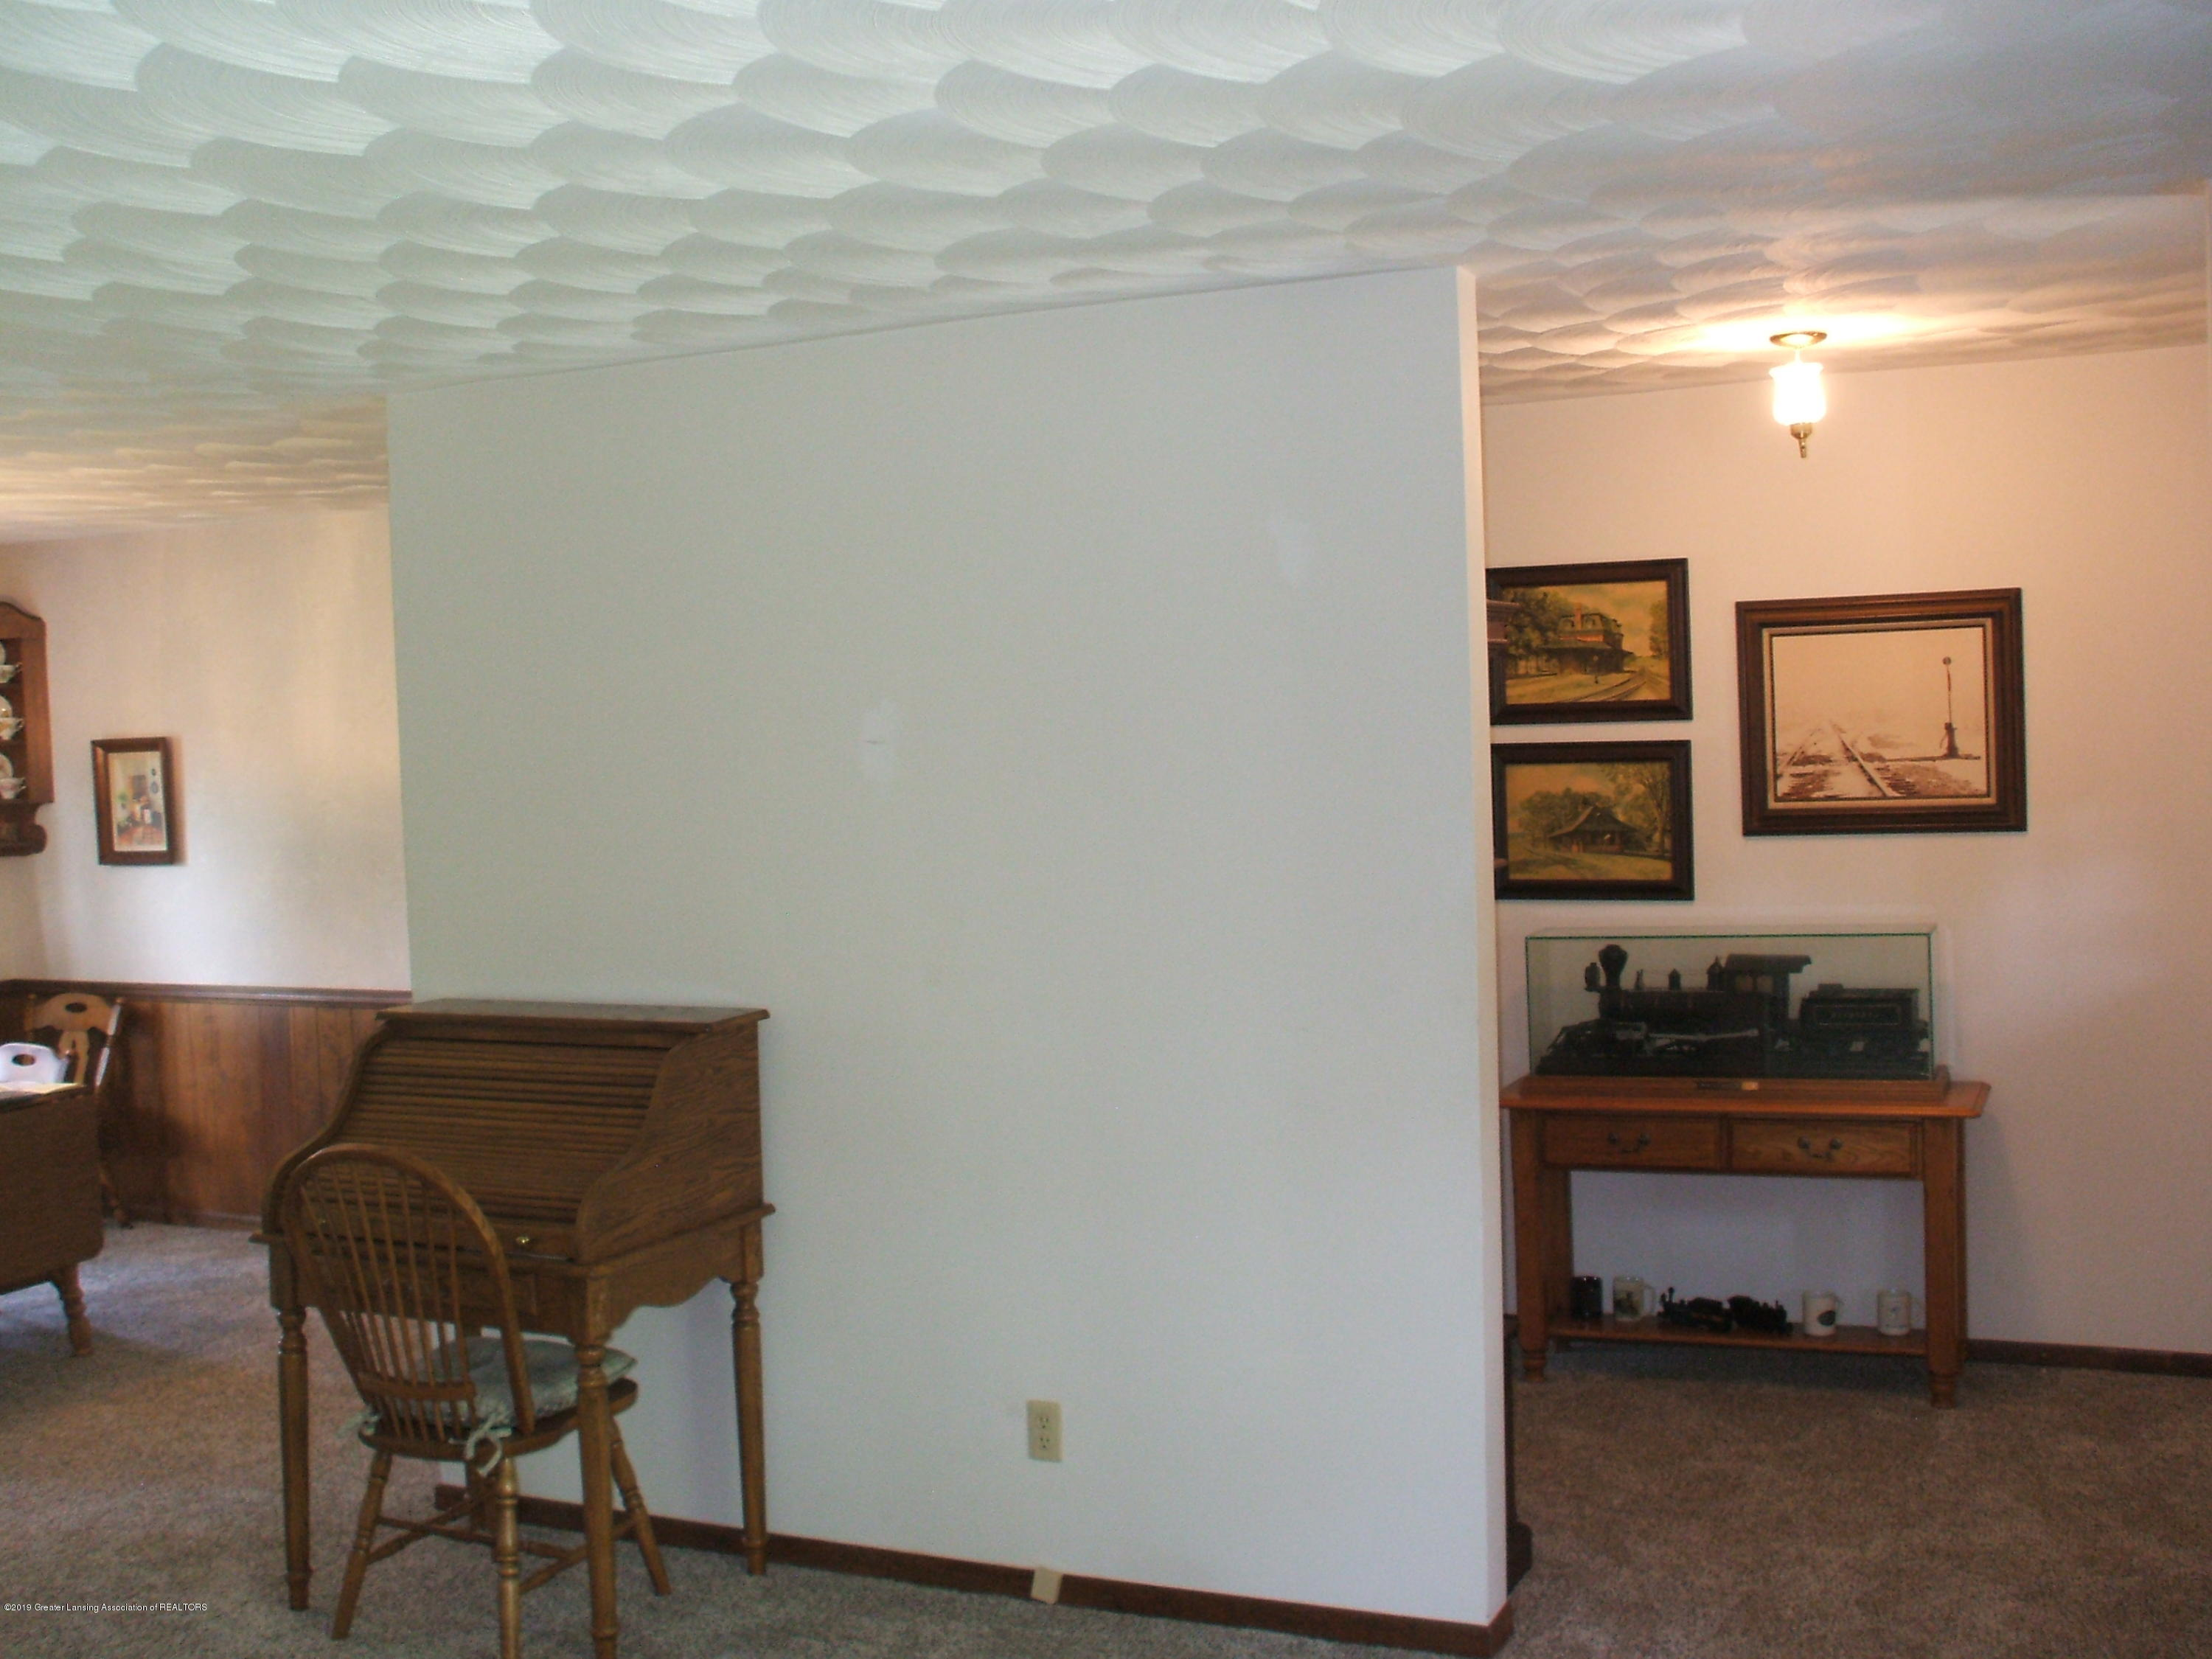 807 W McConnell St - Living room - 11